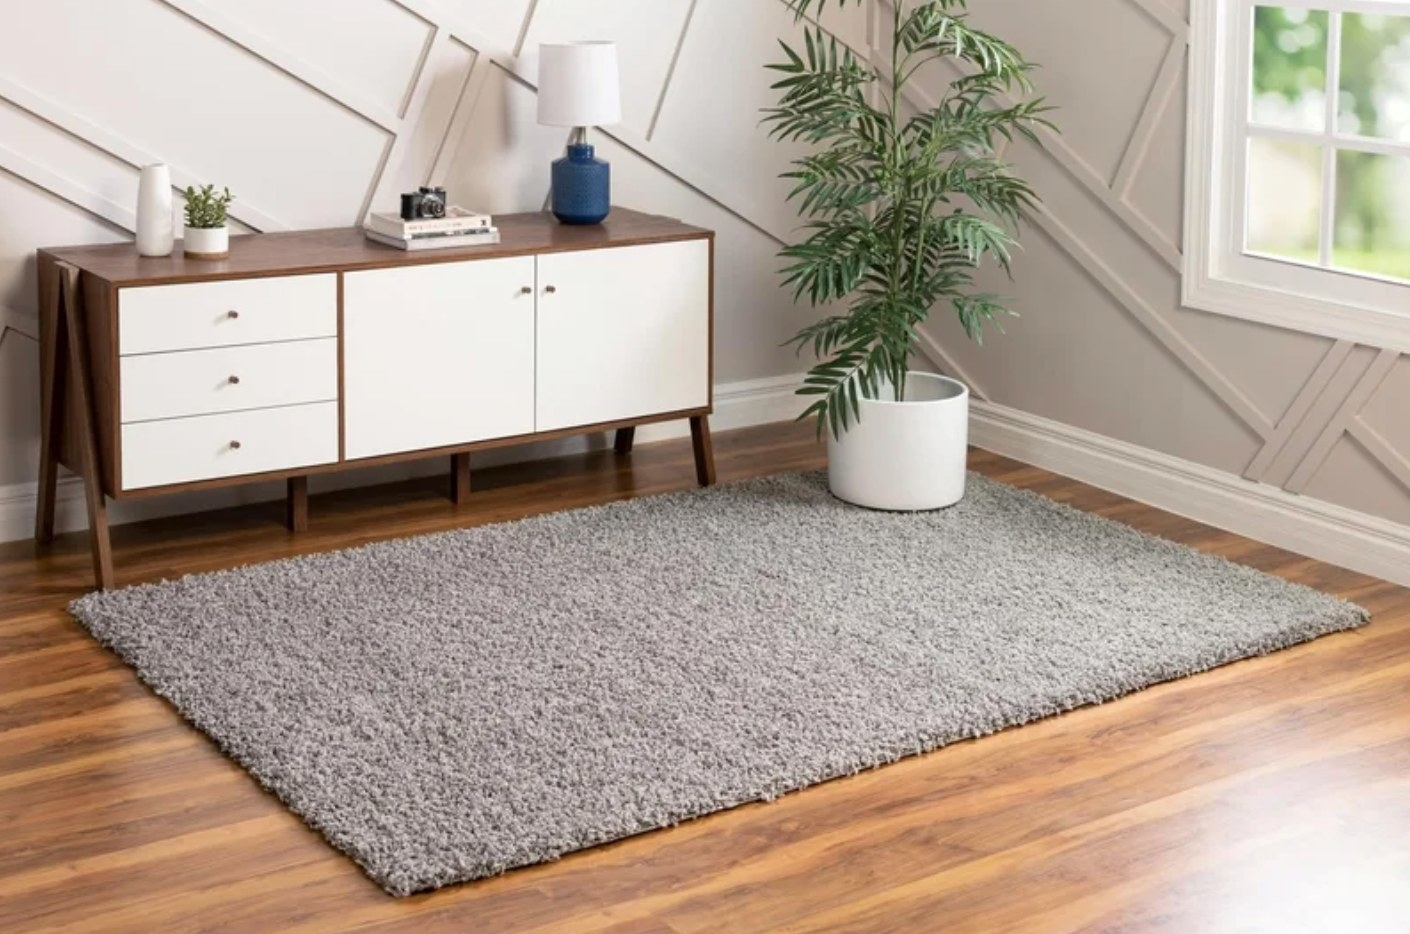 The Mariposa area rug in cloud gray